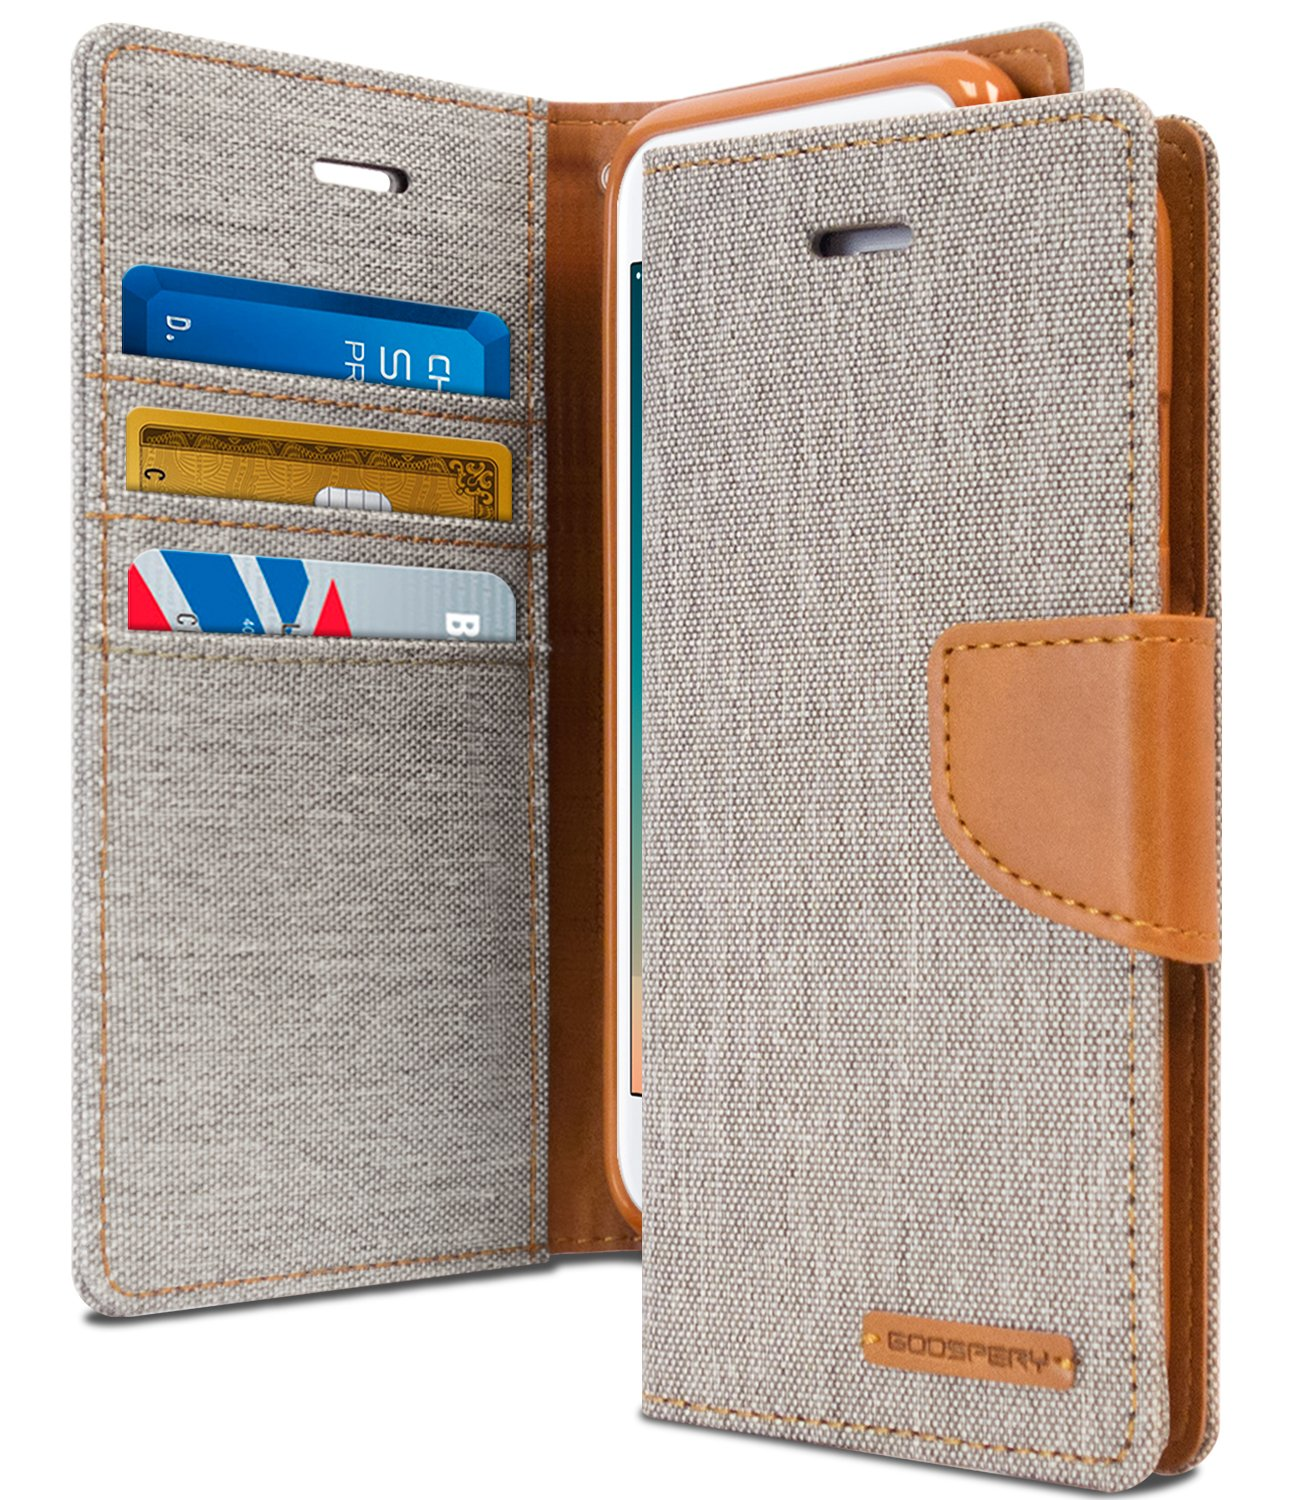 Iphone 8 Case 7 Drop Protection Goospery Plus Blue Moon Flip Black Canvas Diary Denim Material Wallet Id Card Cash Slot W Stand